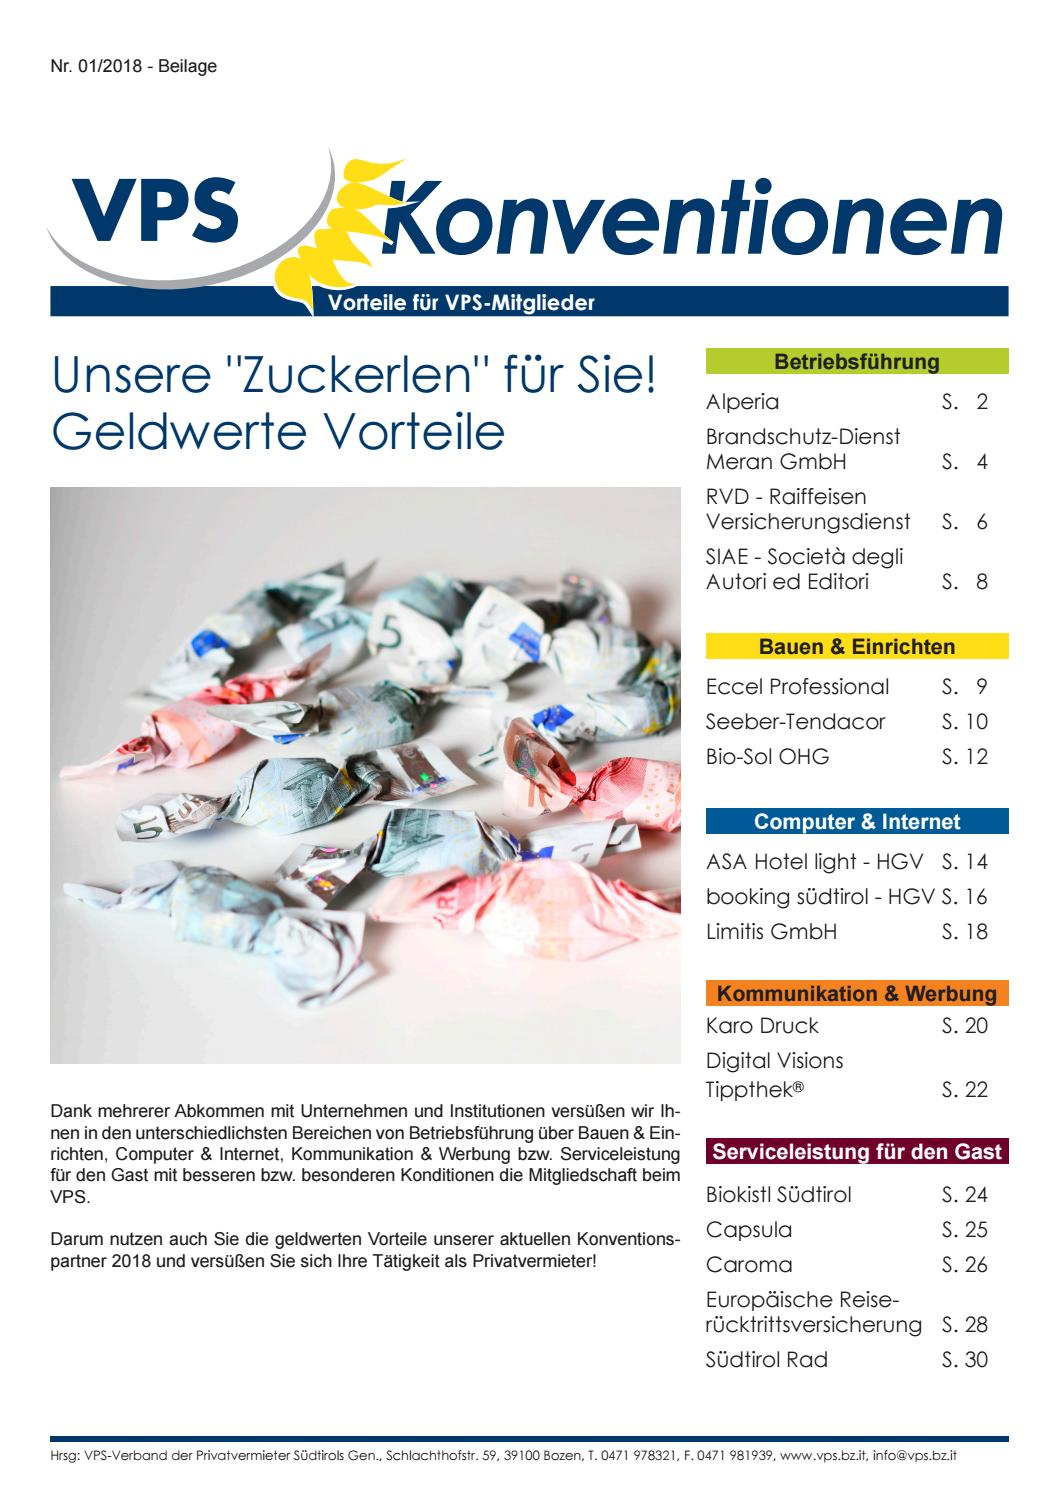 Vps Konventionen 2018 By Vps Issuu